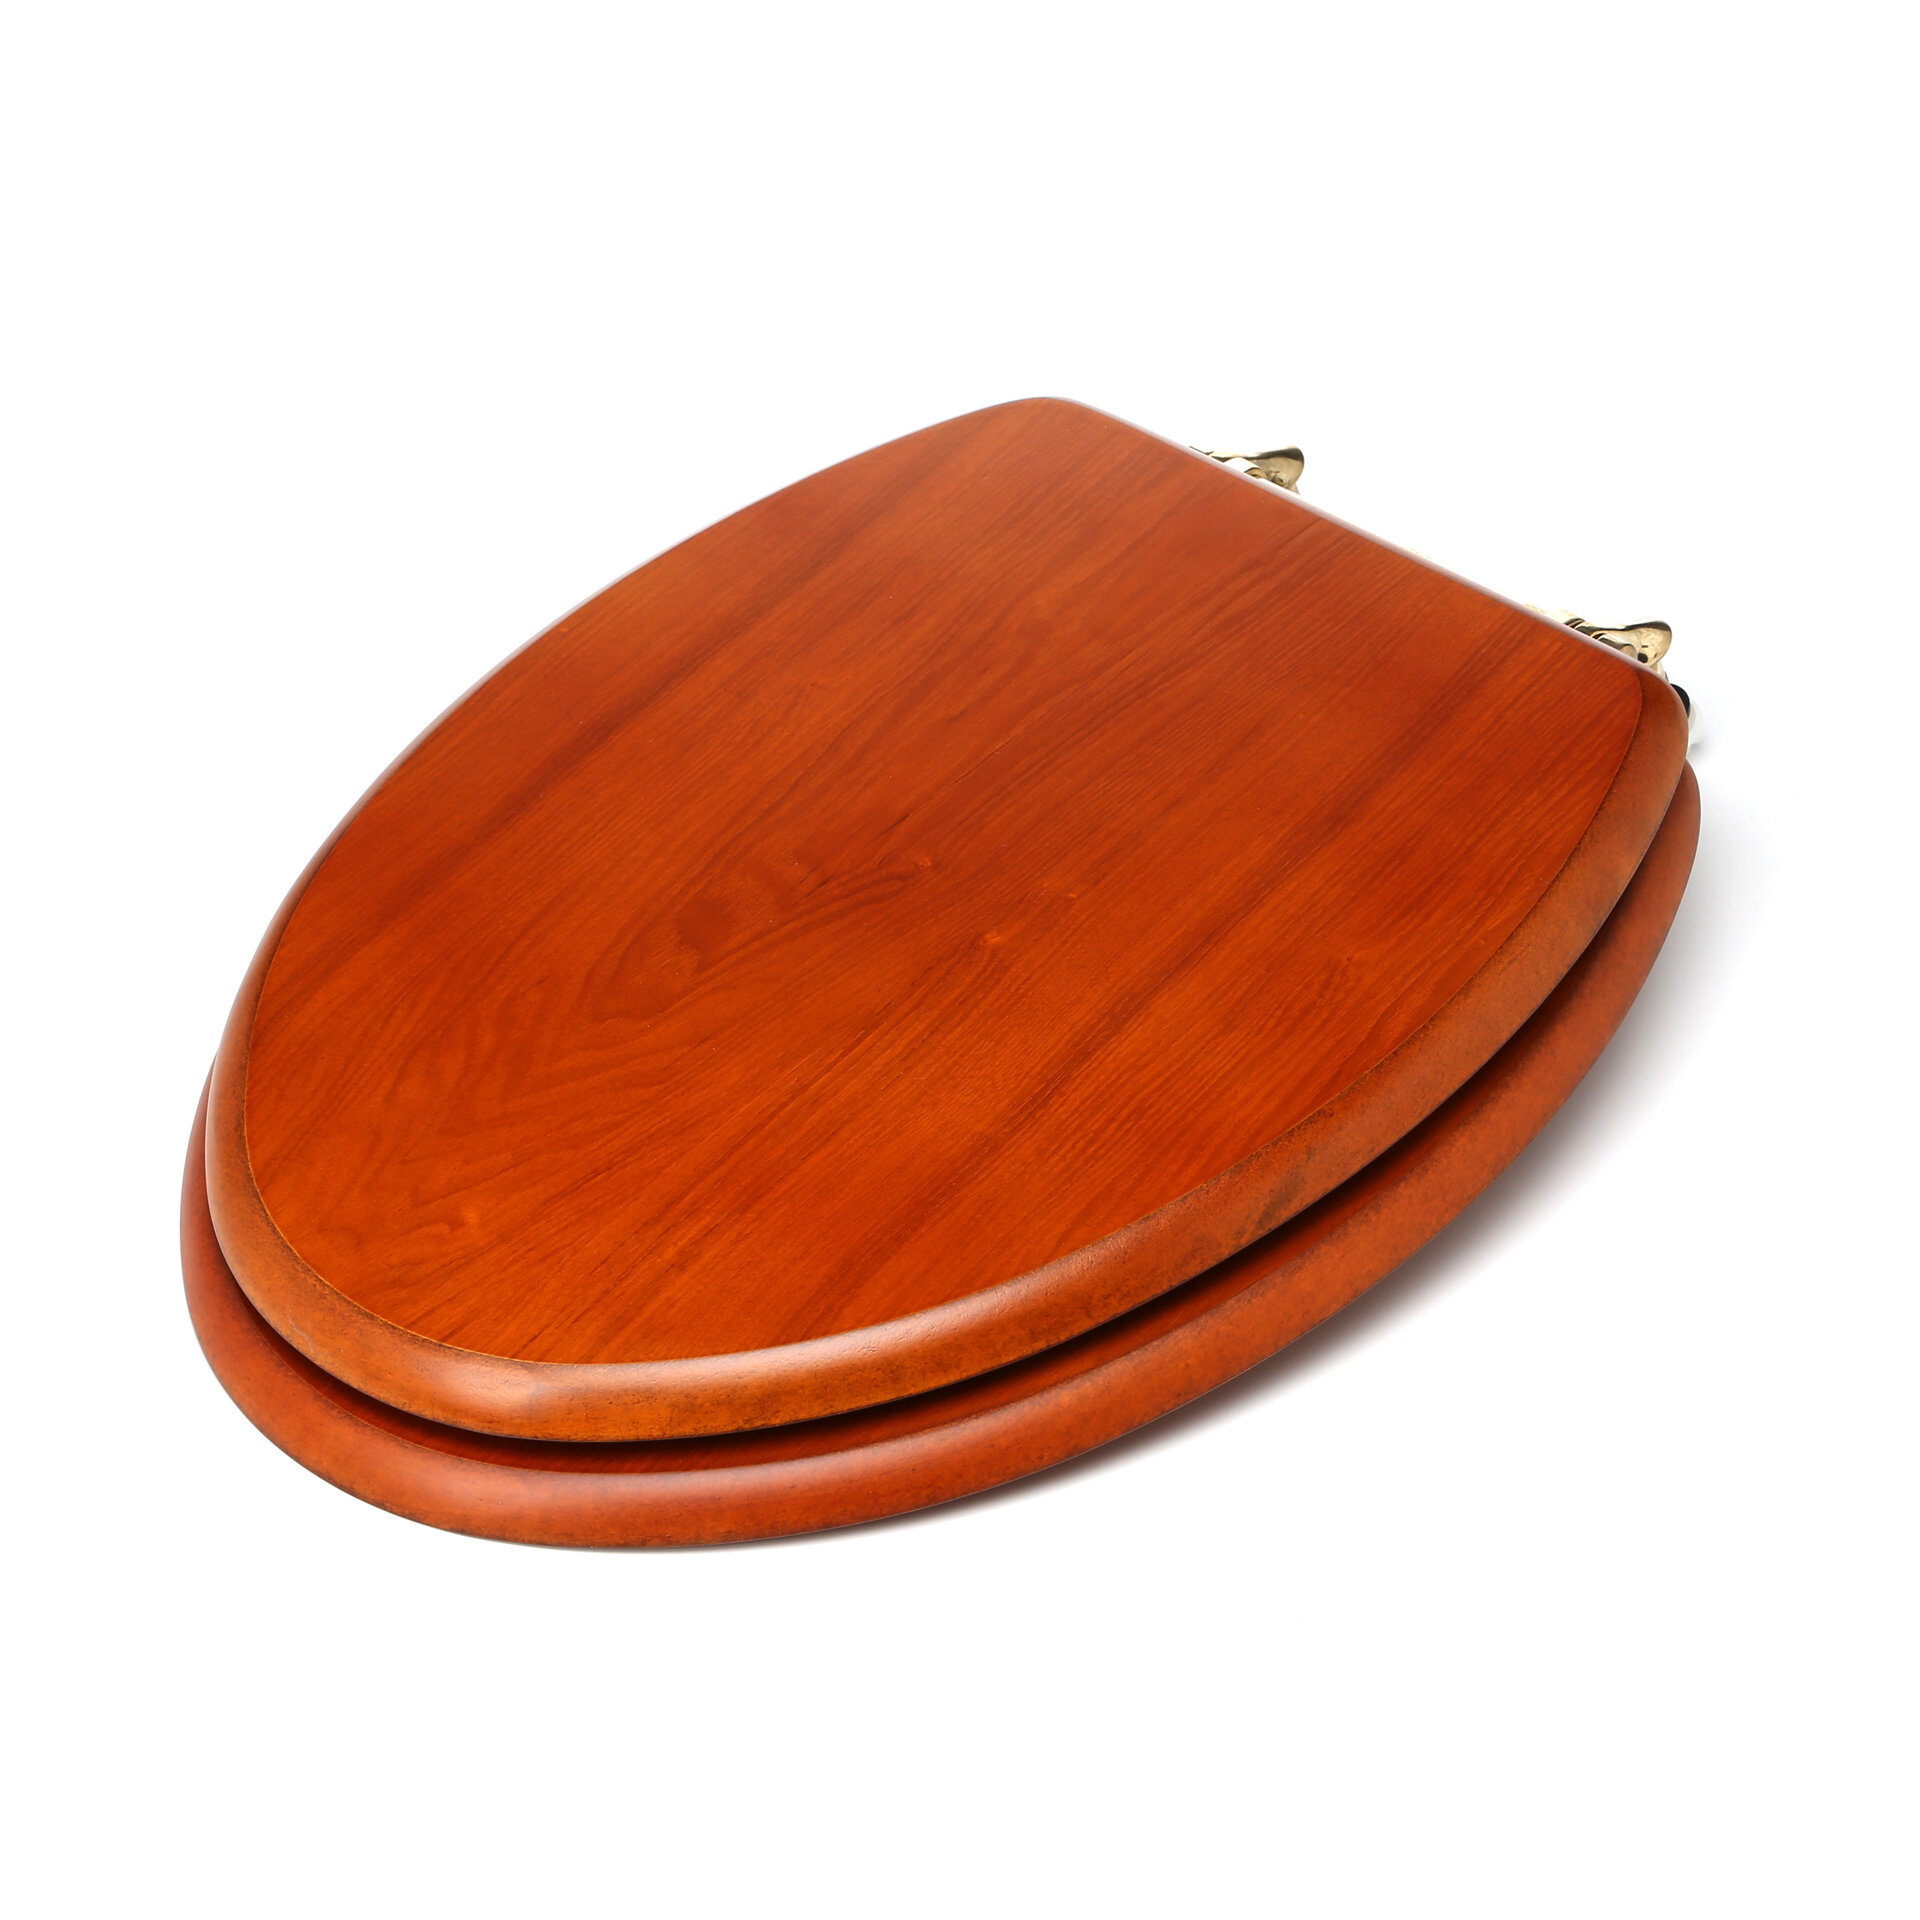 Groovy Decorative Wood Elongated Toilet Seat Ocoug Best Dining Table And Chair Ideas Images Ocougorg